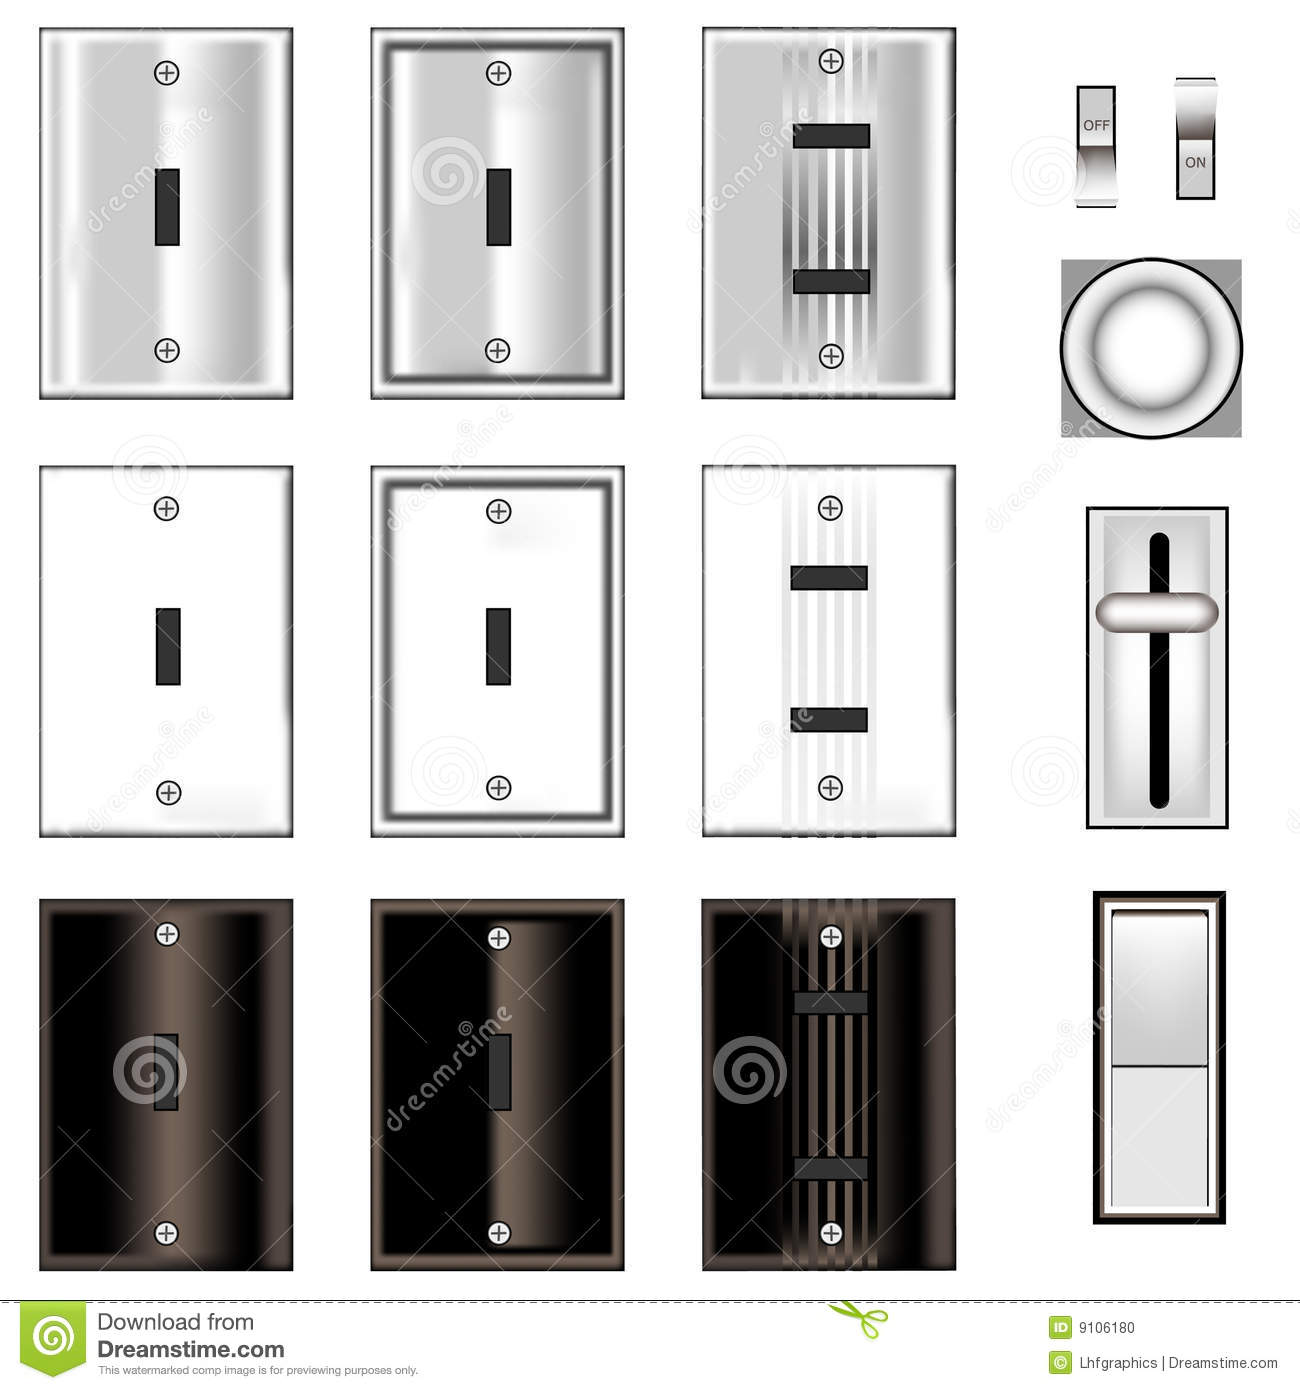 Light Switch Face Plate Wiring Diagrams Programmable Integrated Circuit Isp1504abs118 Rf Transceiver Usb Ulpi Switches And Faceplates Stock Vector Illustration Of Rh Dreamstime Com